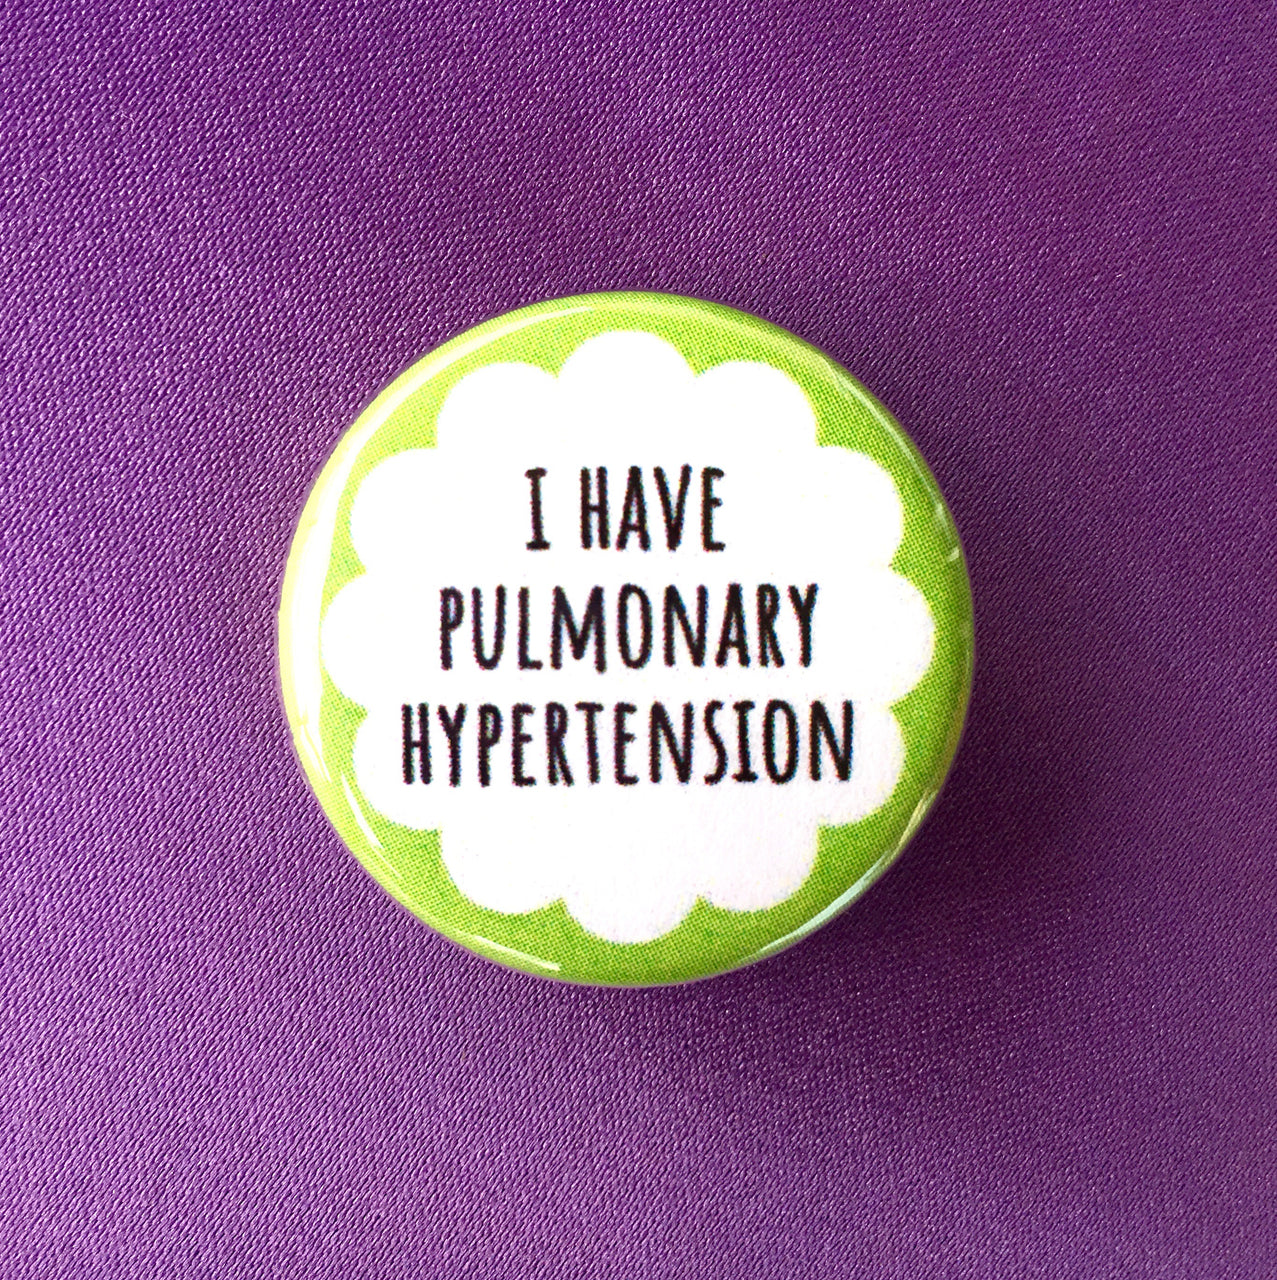 I have pulmonary hypertension - Radical Buttons